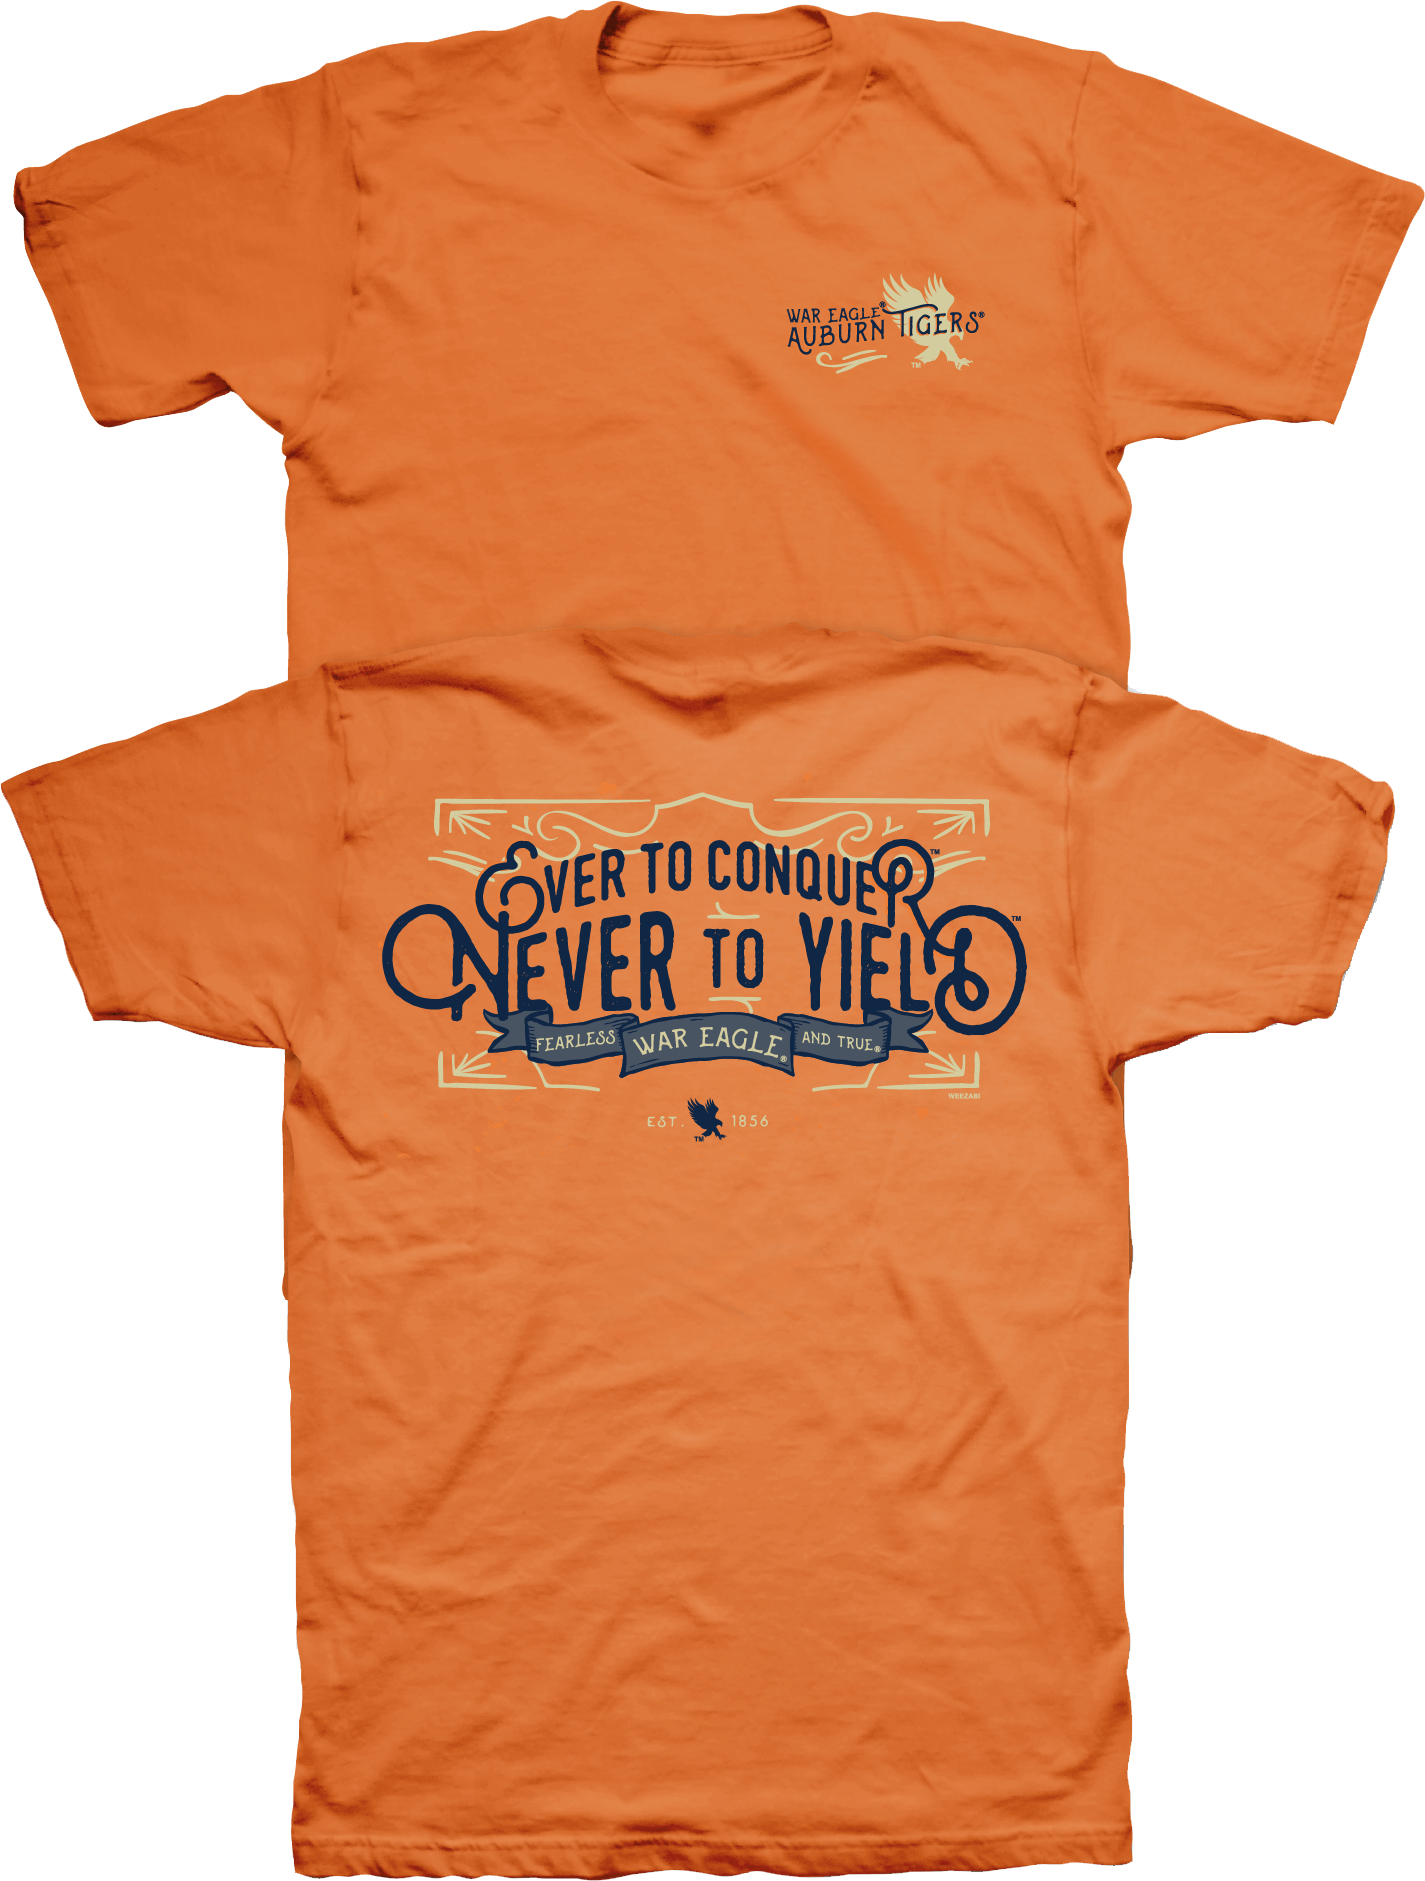 Auburn Football T Shirts Awful Cool Branding Creative